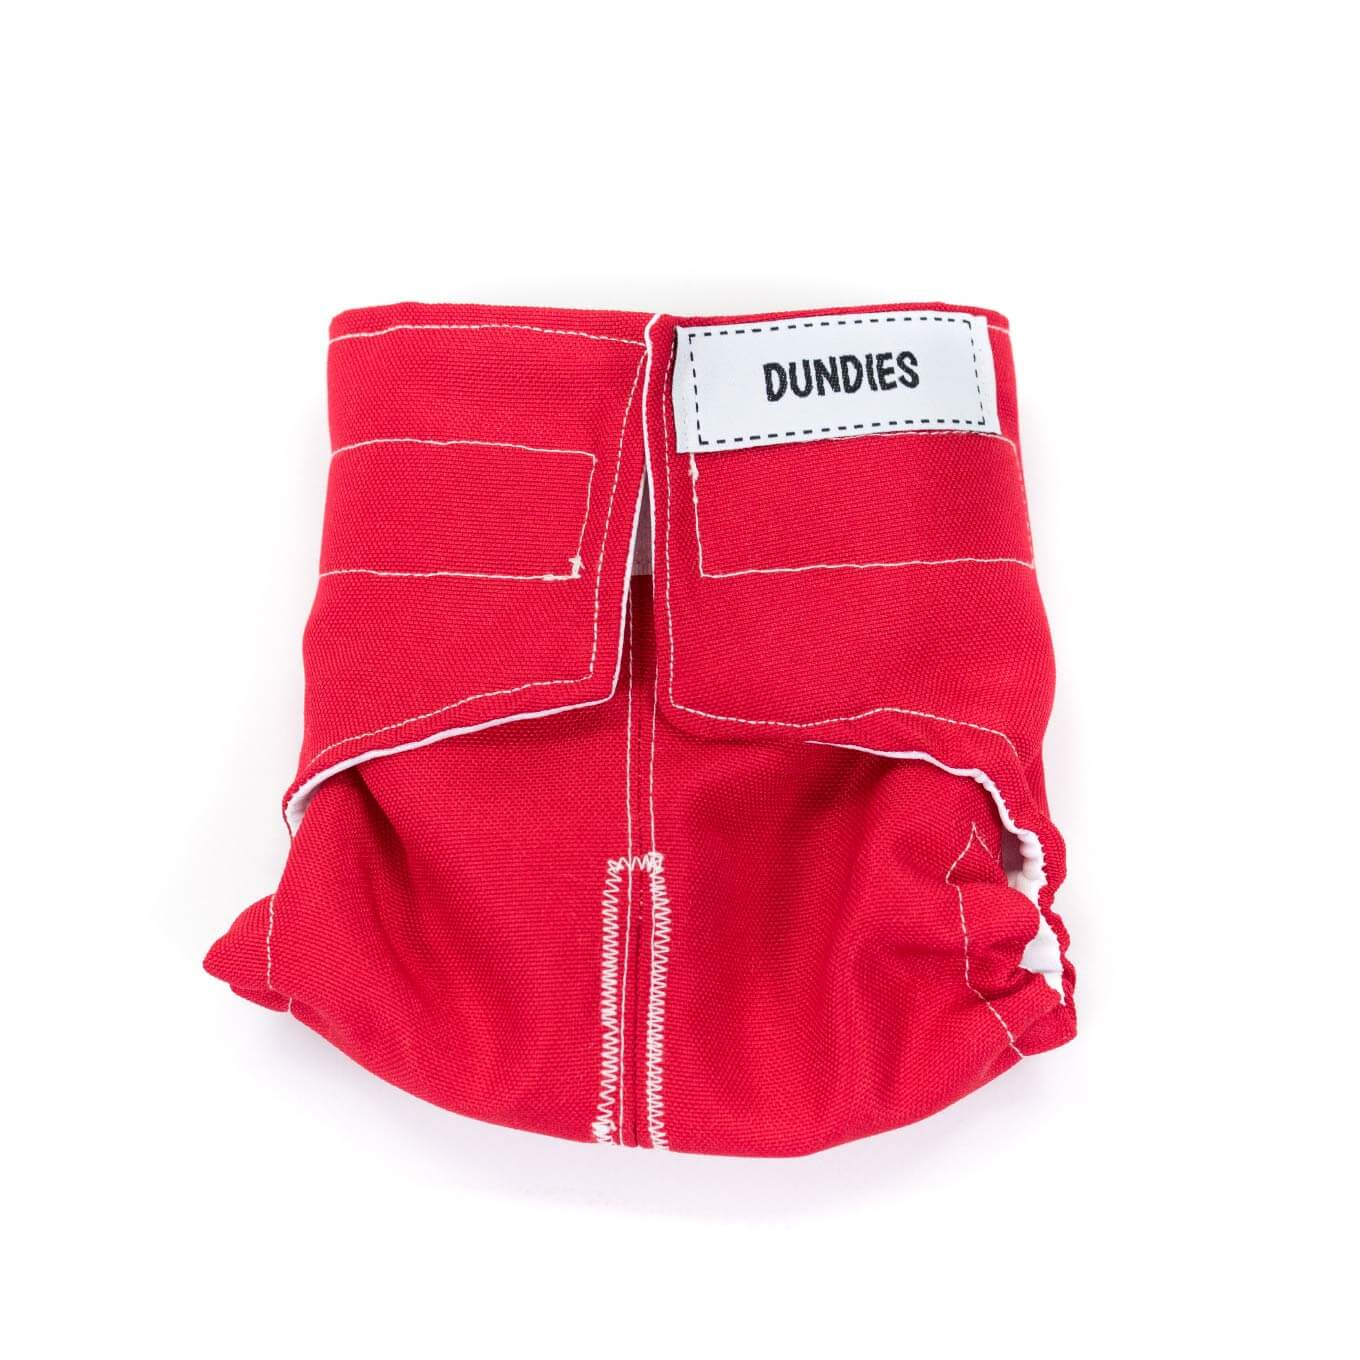 Dundies Red All In One Nappy